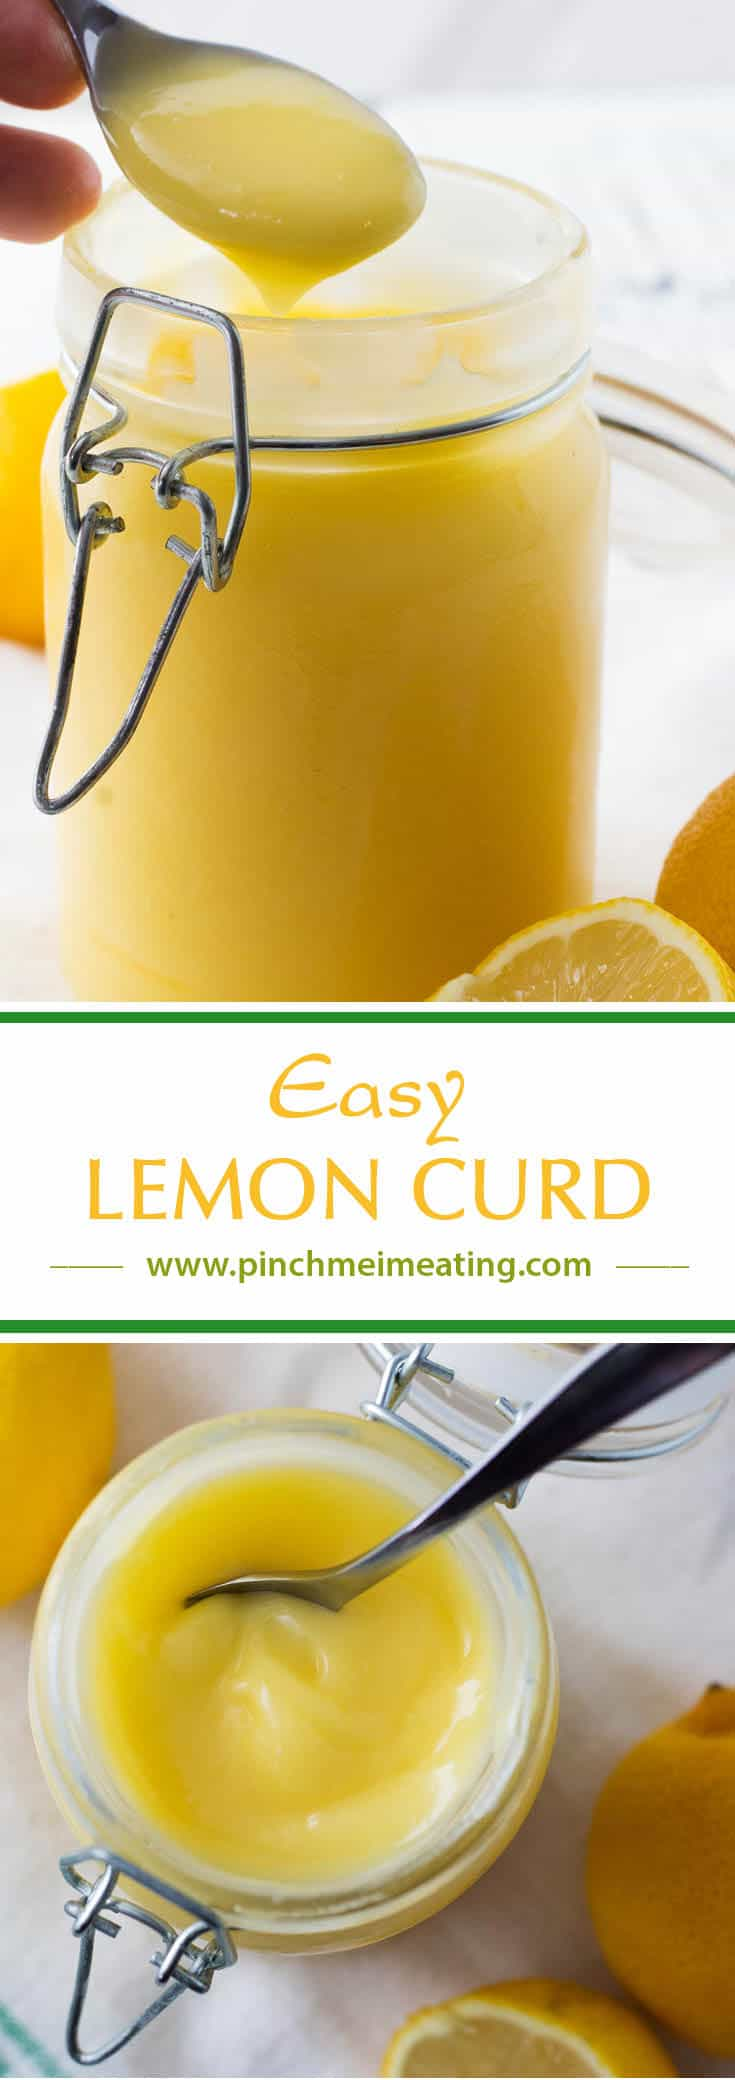 Luscious, tangy lemon curd doesn't have to require constant babysitting on the stove - this easy lemon curd recipe is foolproof, silky, and delicious! Perfect for spreading on scones.#afternoontea #recipes #teatime